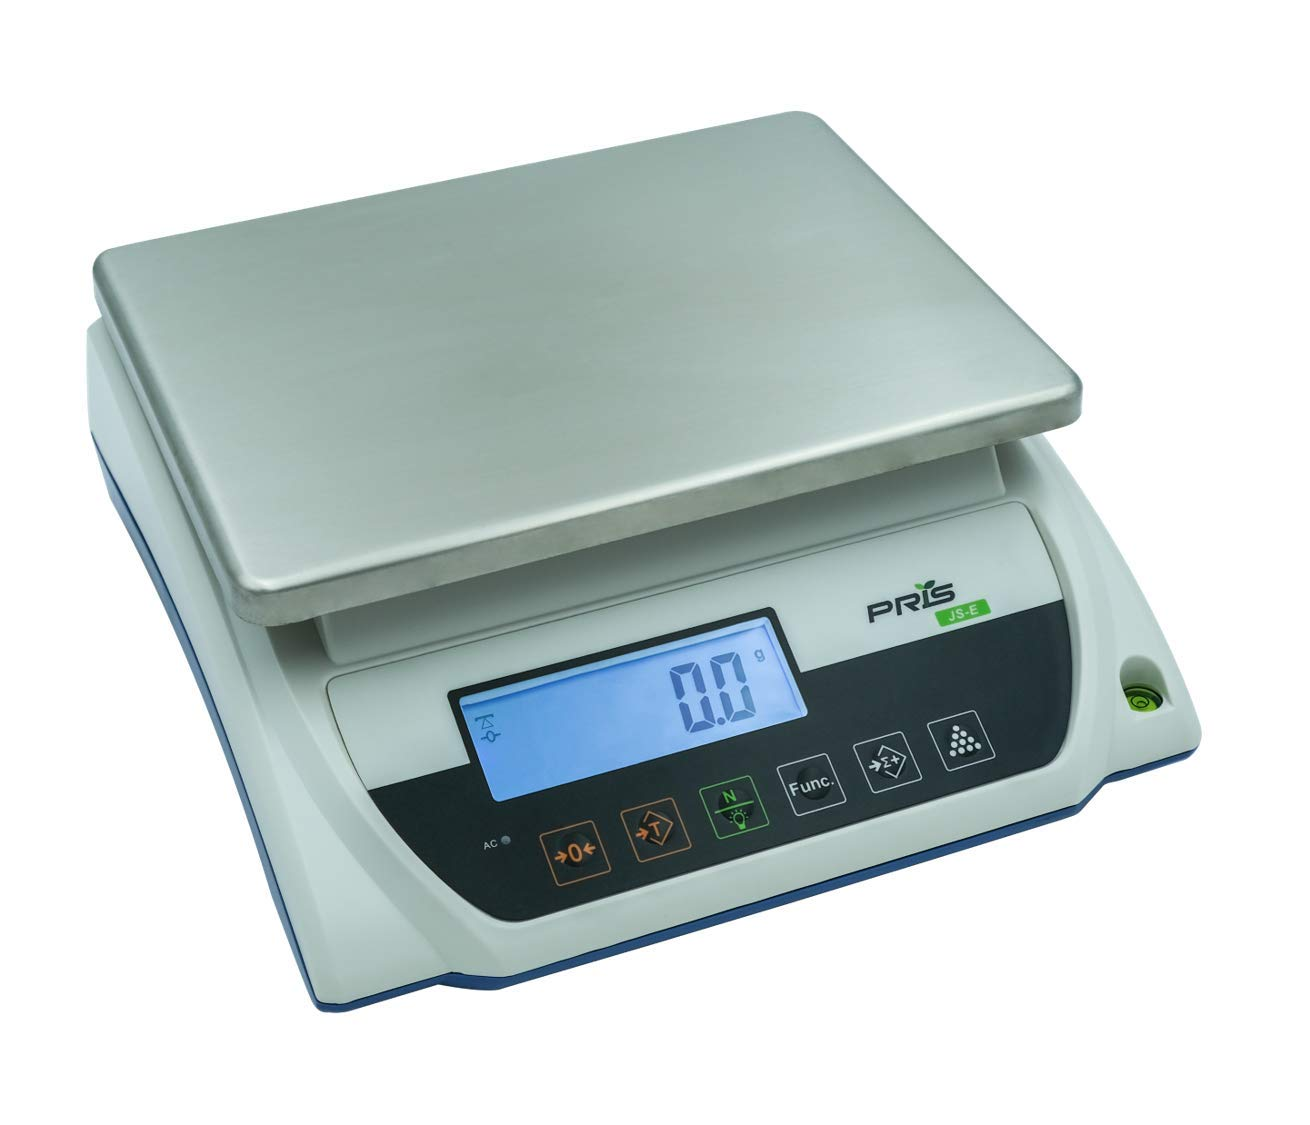 30kg x 0.5g Industrial and Scientific Use High Performance Precision Weighing /& Counting Scale 60lb x 0.001lb Laboratory